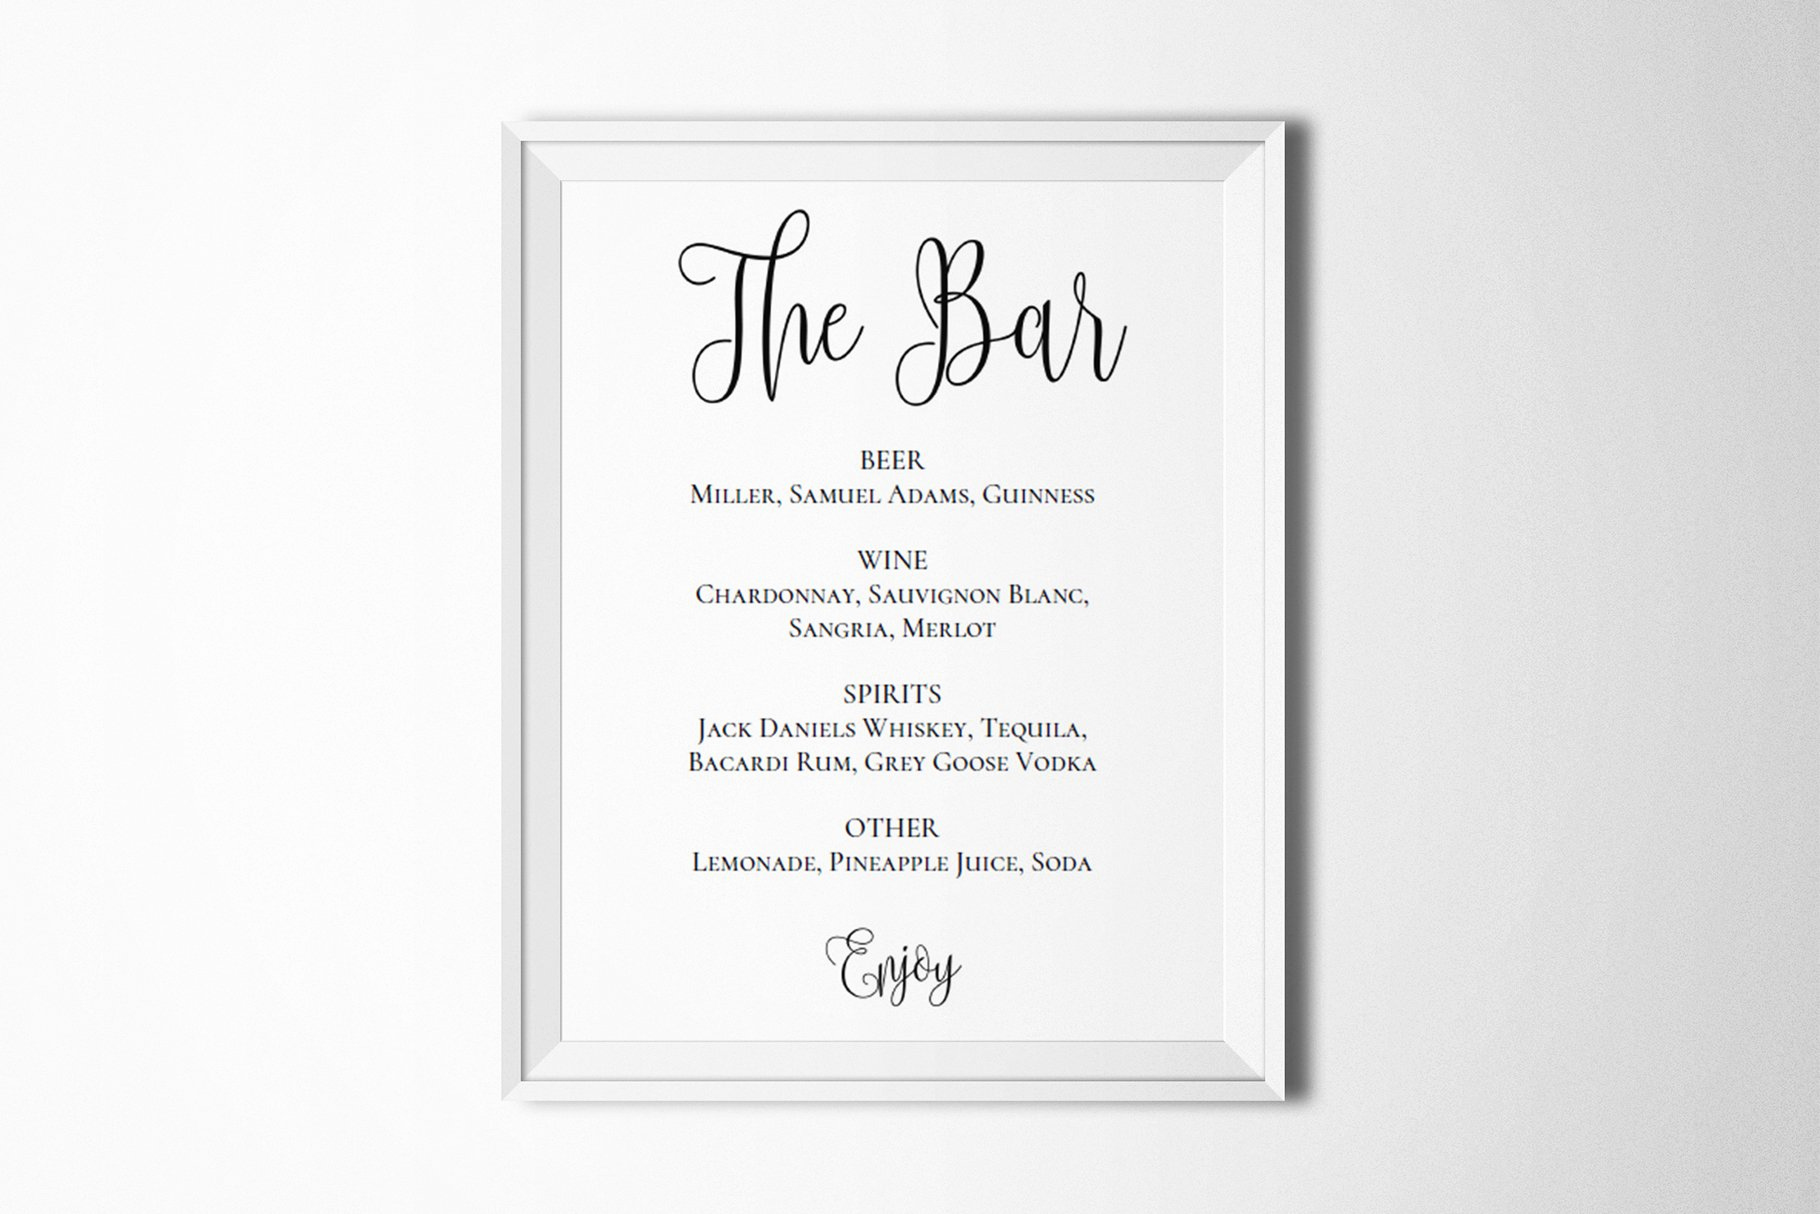 Sports Bar Menu Template Fresh Wedding Bar Menu Template Drink Sign Stationery